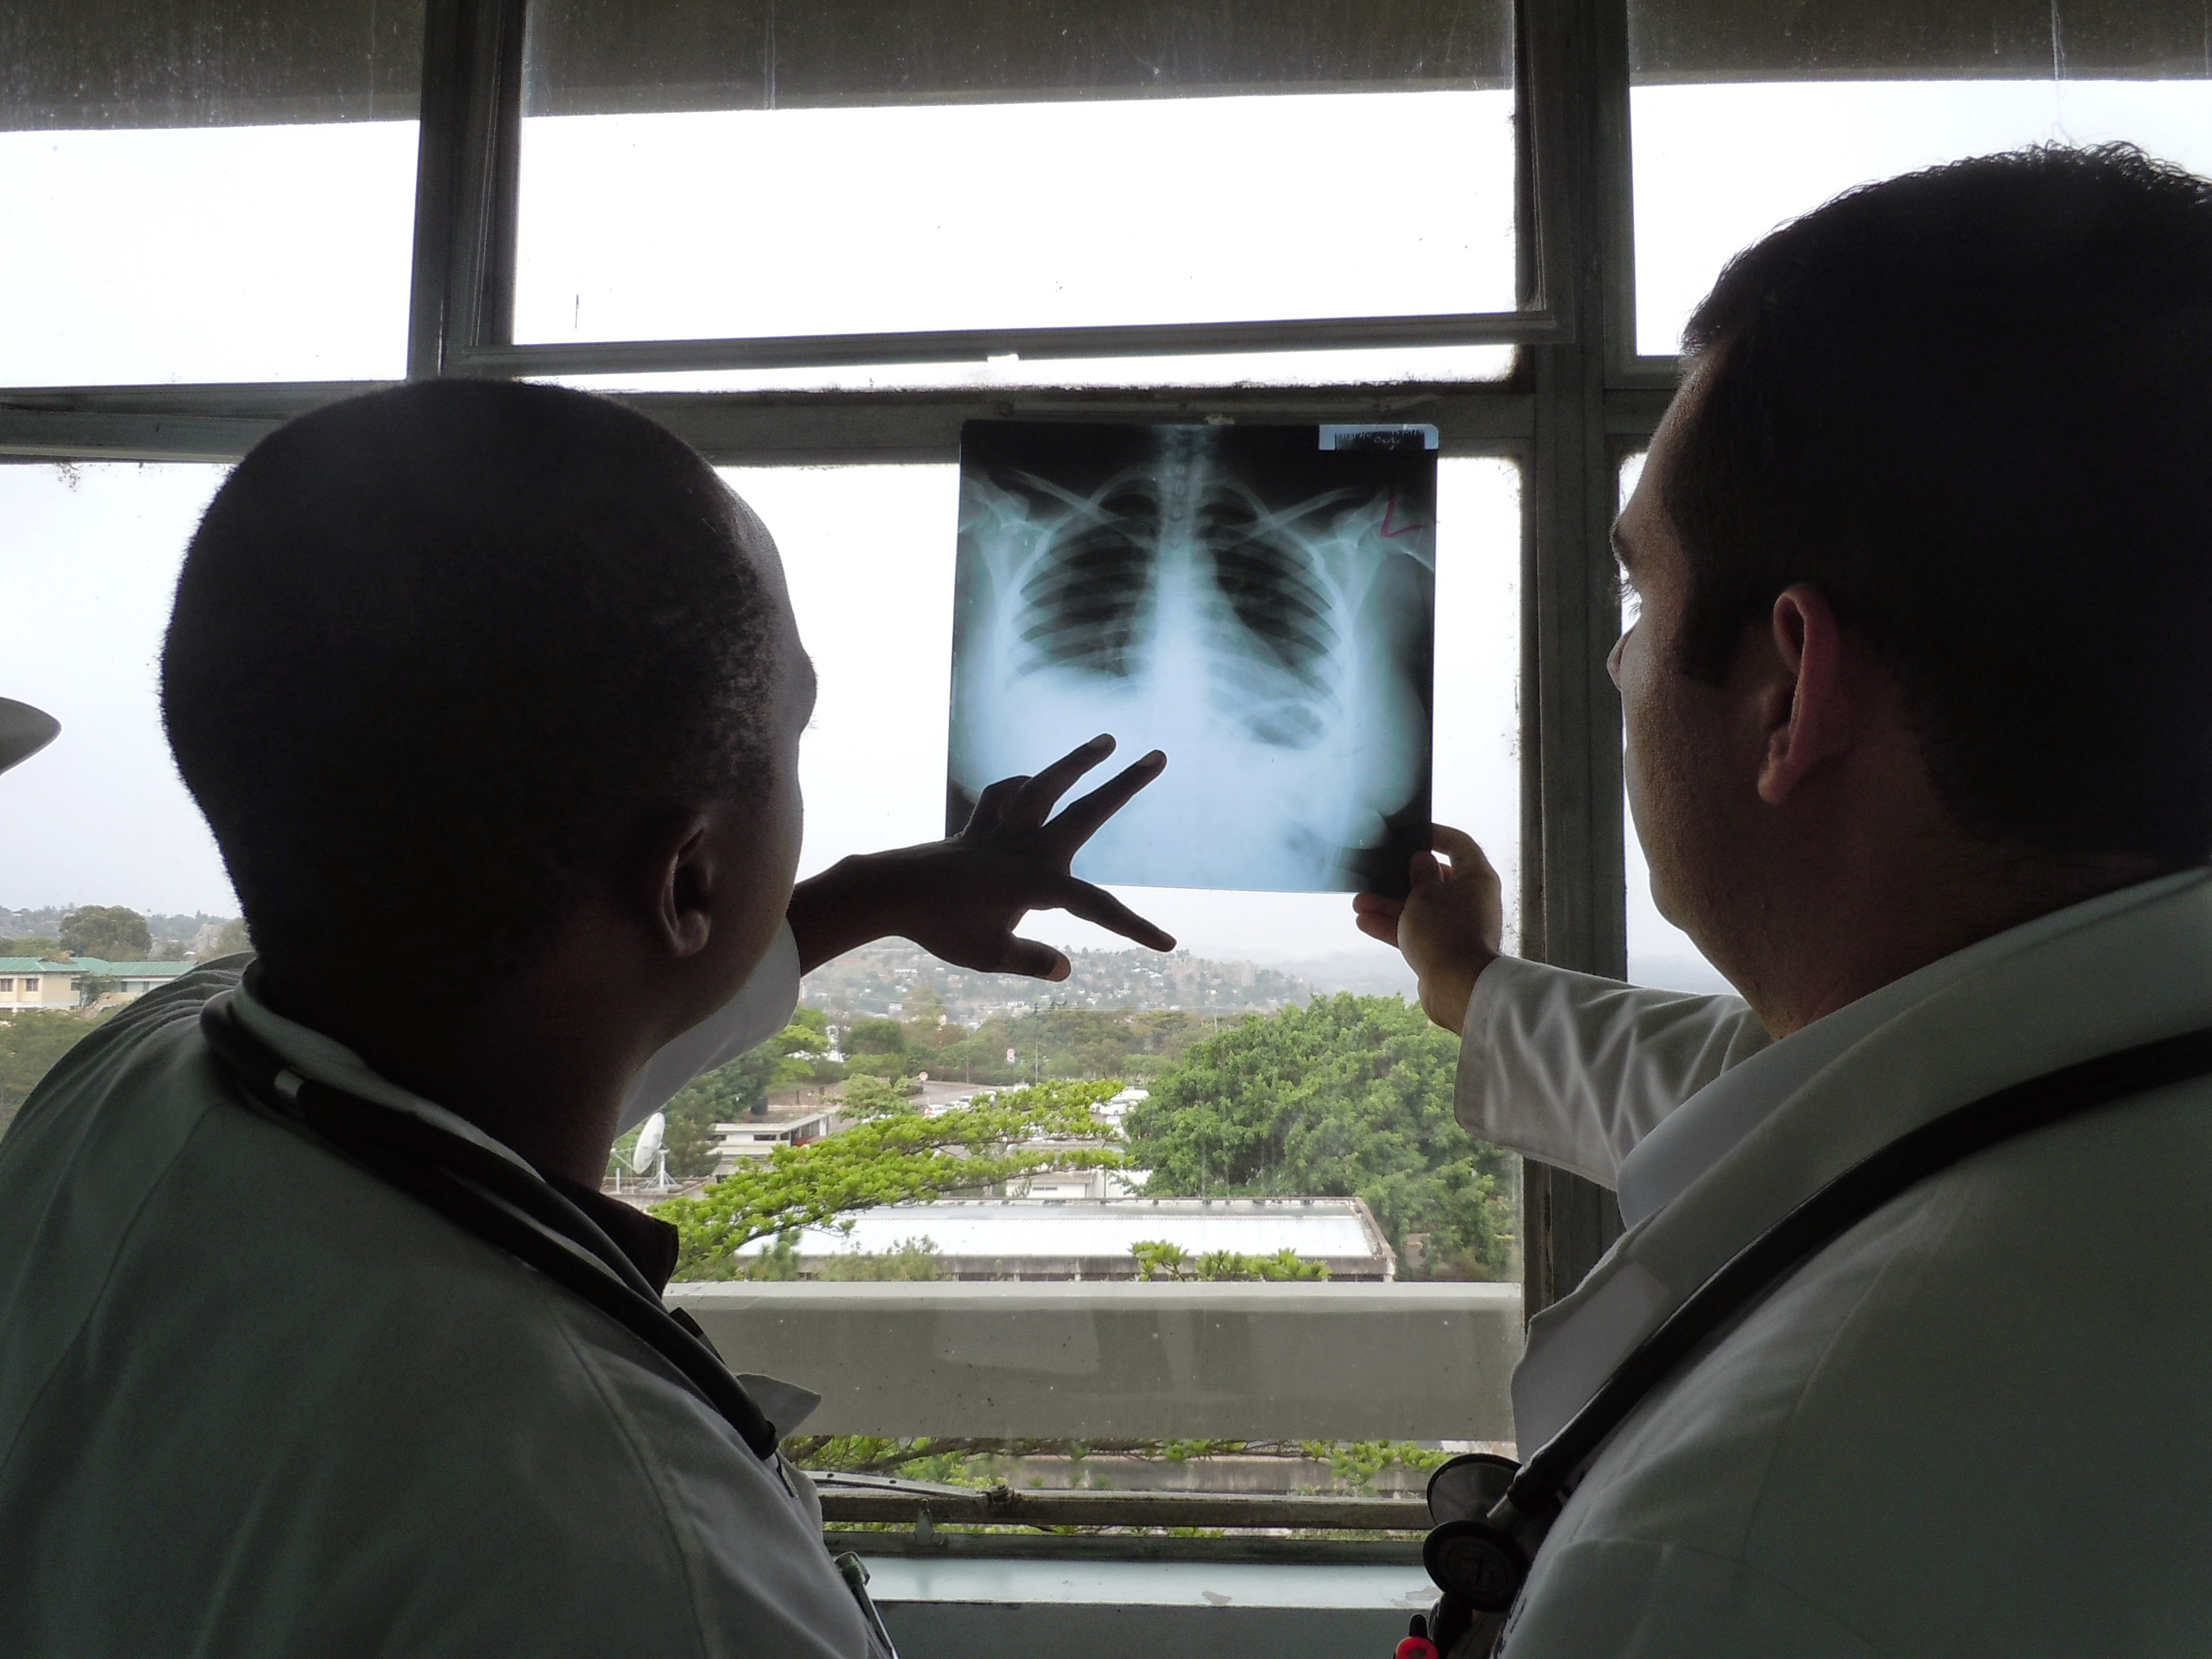 Reviewing X-Rays